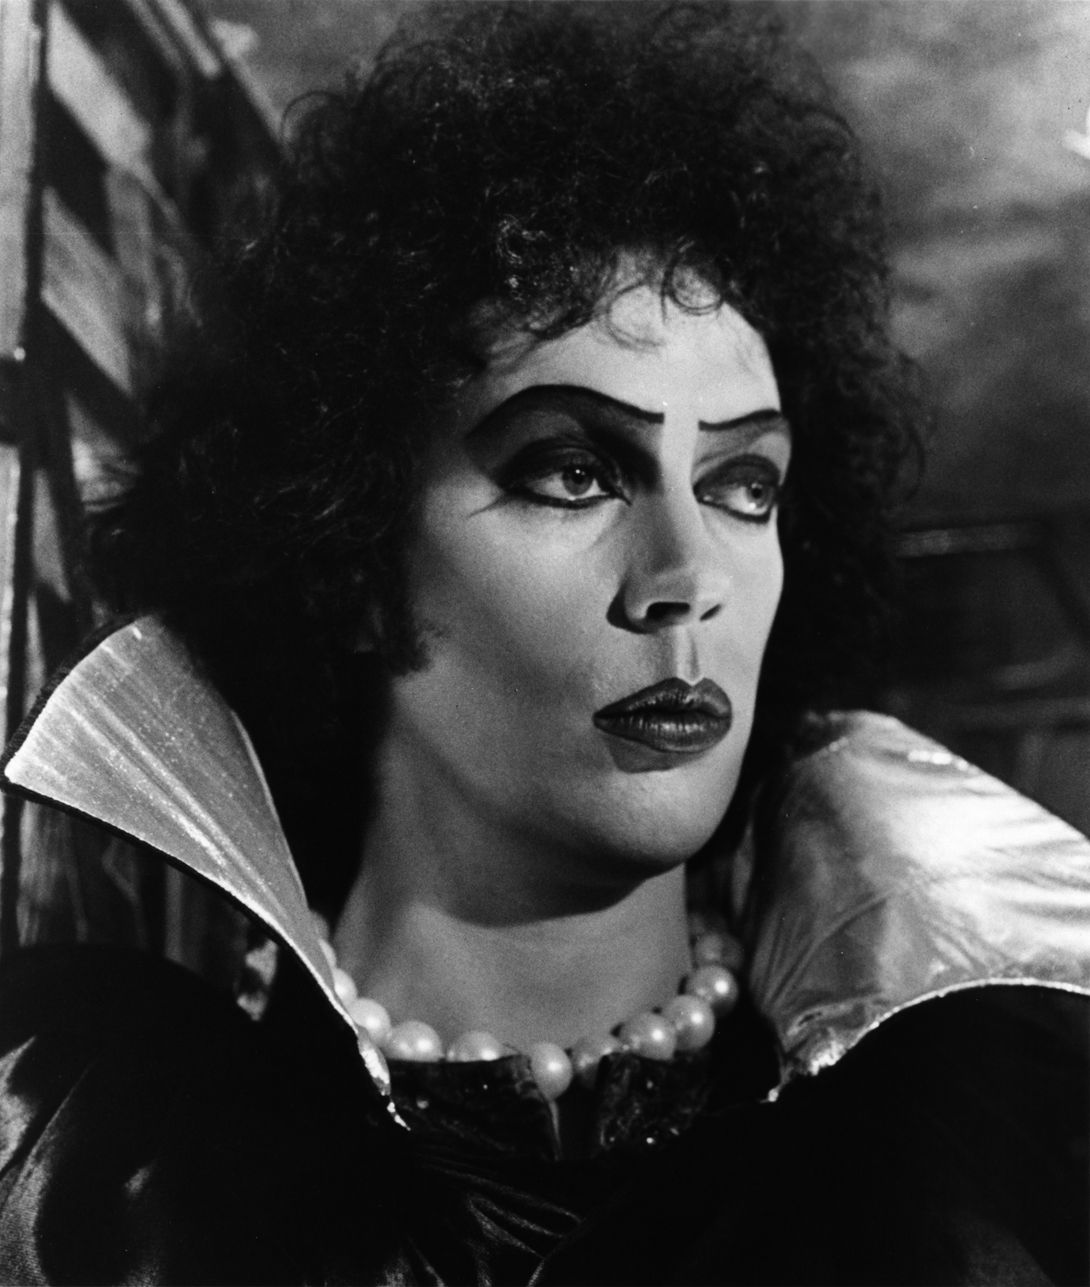 cd5eb142cdde26dd32dac945d7861cb4 40 Facts You Probably Didn't Know About Tim Curry